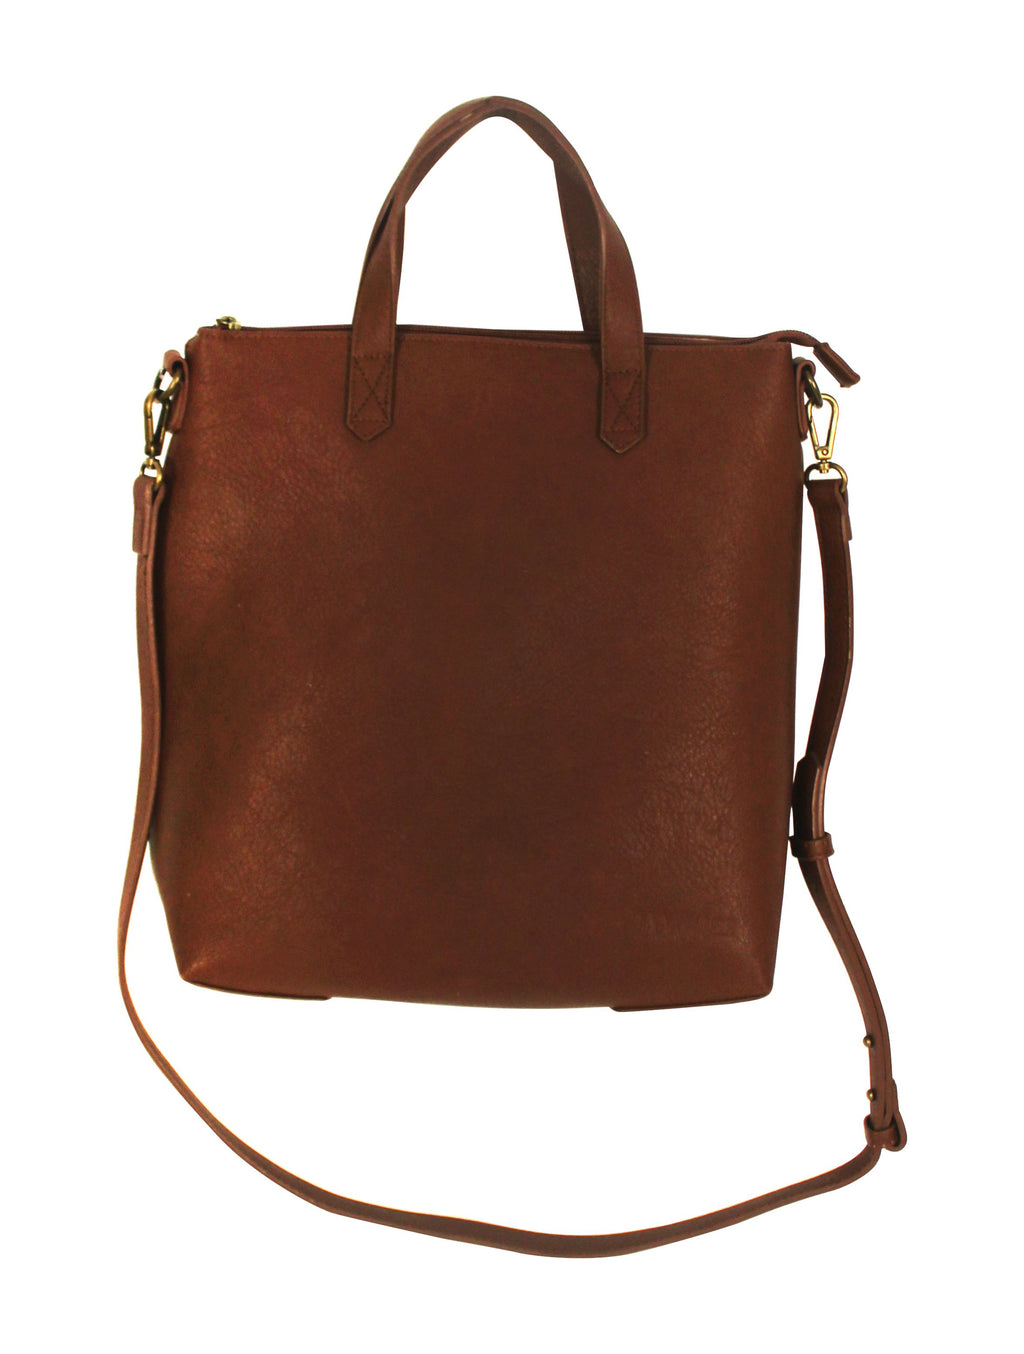 Moana Road Woburn Tote Bag